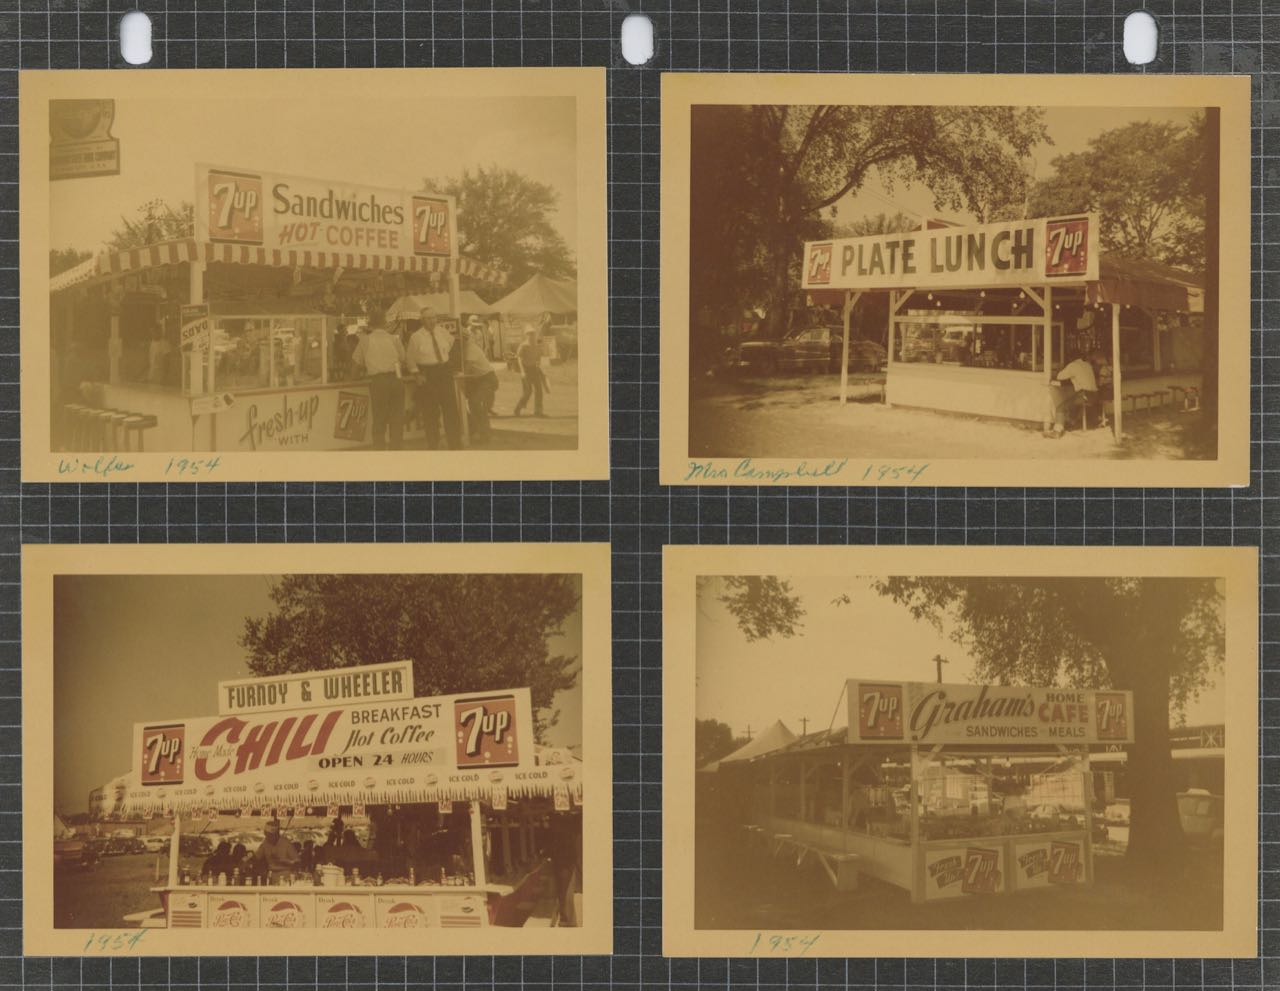 Photographic talley of placement of 7UP advertising]. Photo collection – Iowa State Fair Lunch Stands.